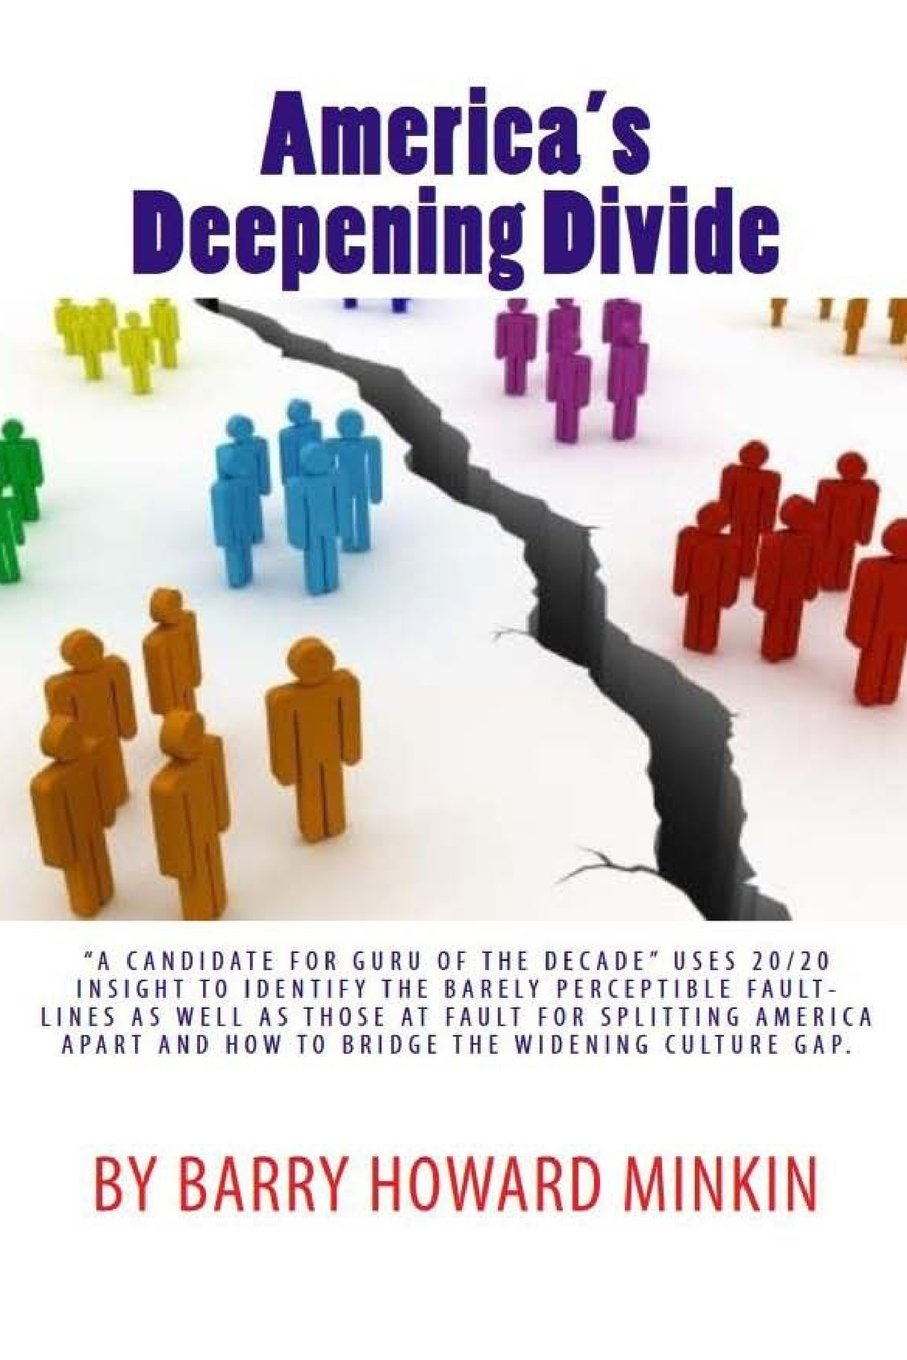 Americas Deepening Divide: Amazon.es: Barry Howard Minkin: Libros en idiomas extranjeros